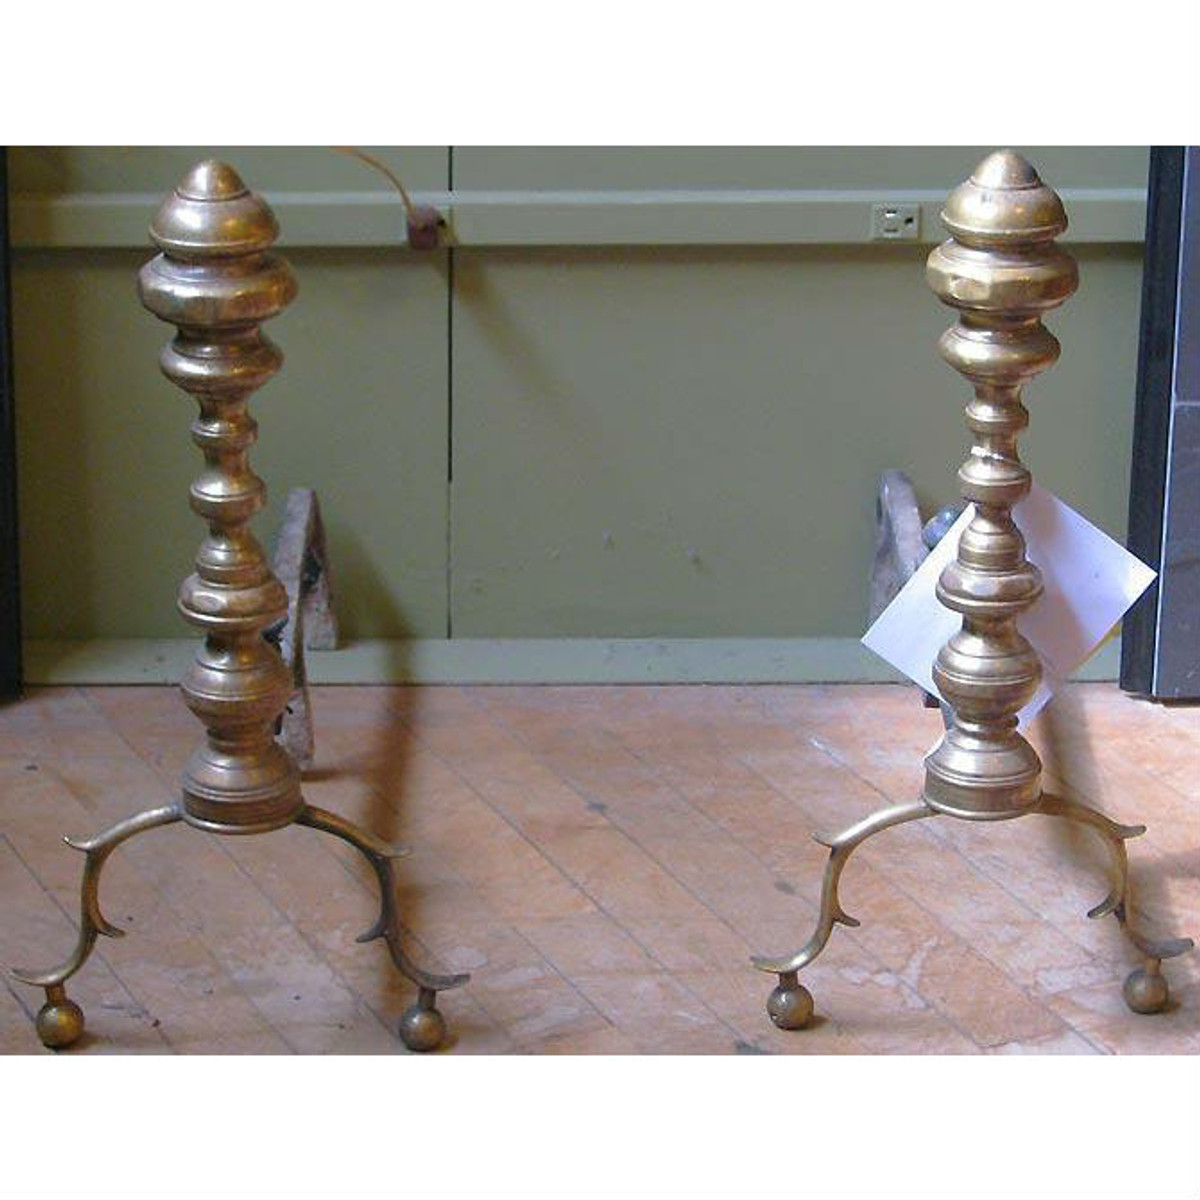 806135 - Pair of Antique Colonial Revival Andirons